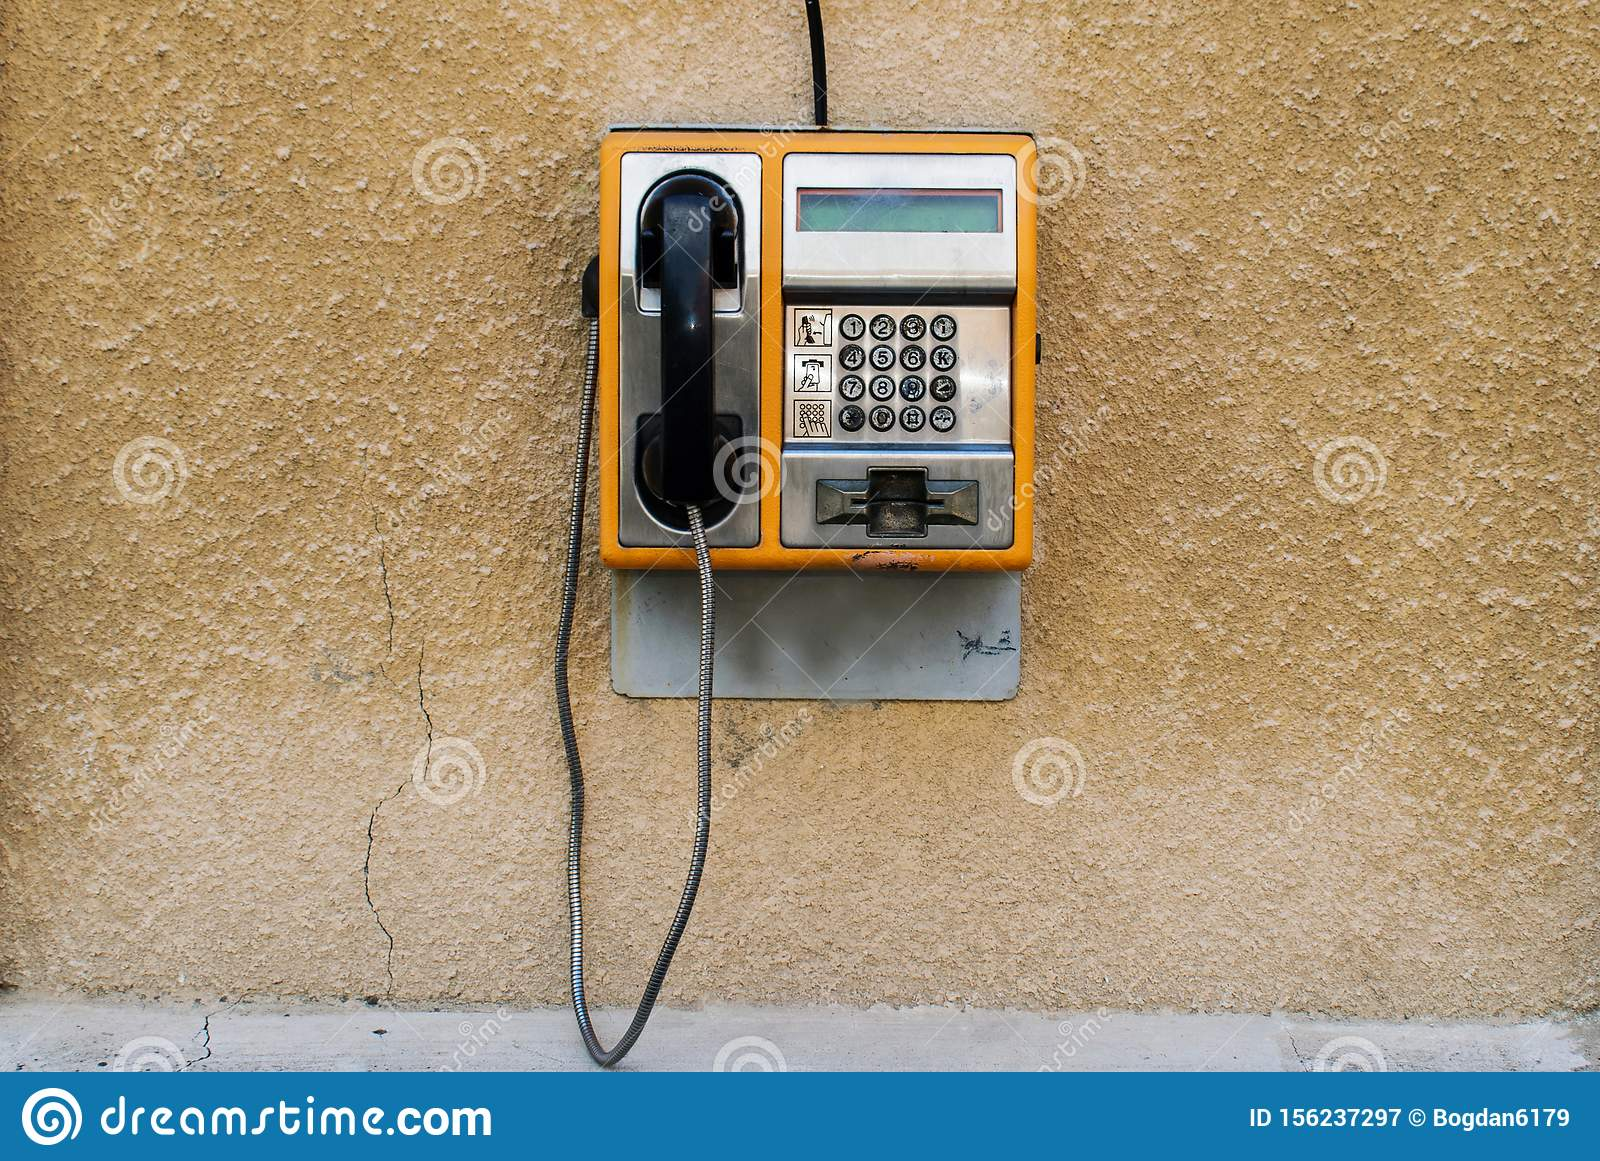 An old orange phone with a card. Street phone on a wall. This phone was used in Europe in the 1990s